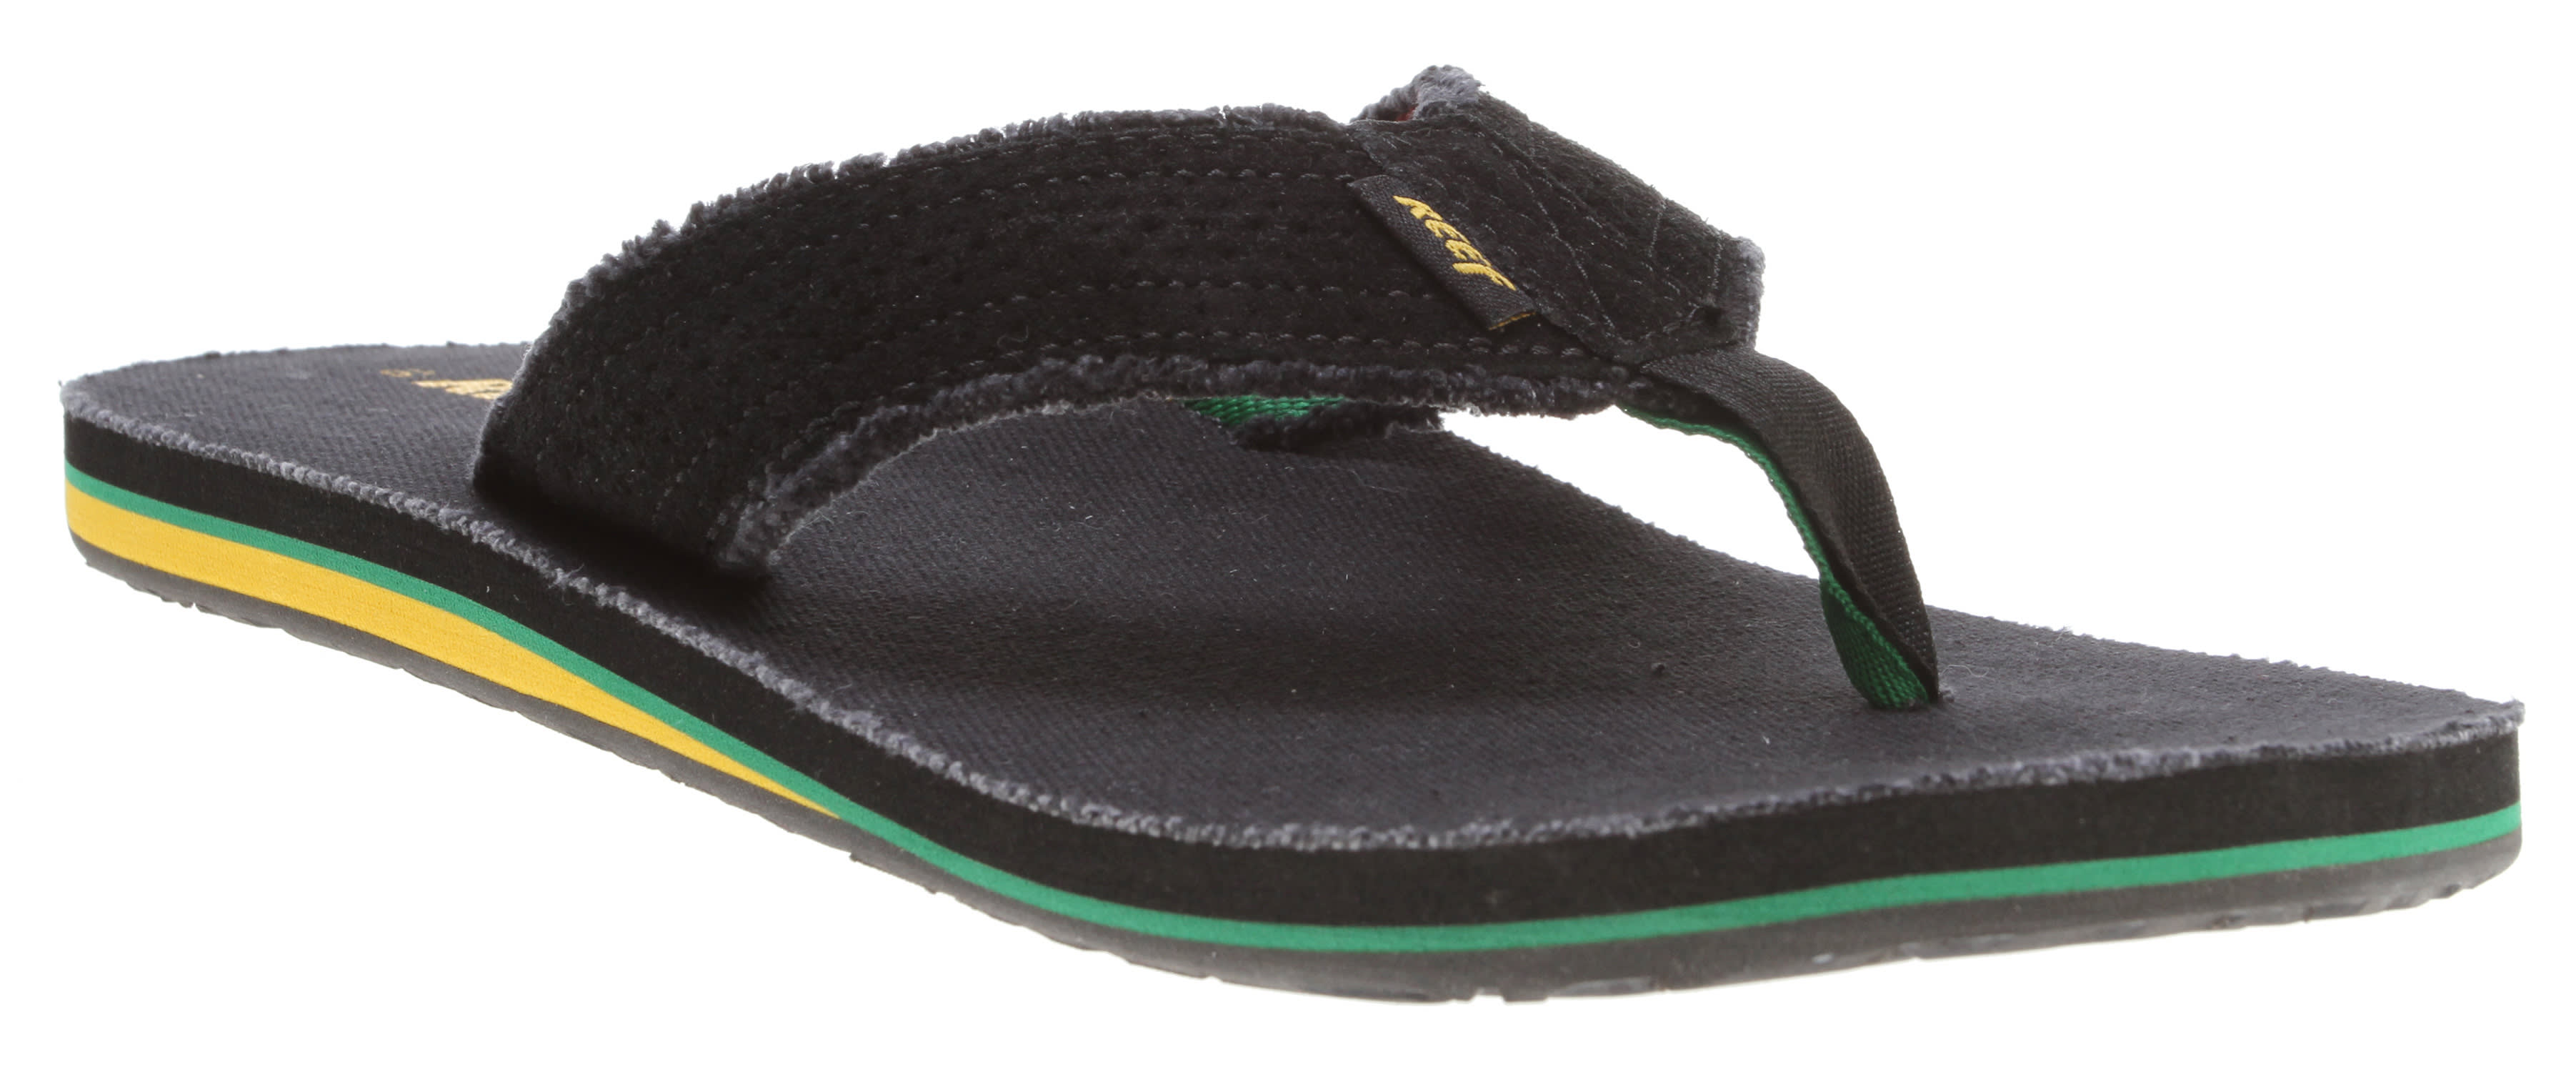 a580b7cb4 Reef Surf And Saddle Sandals - thumbnail 2